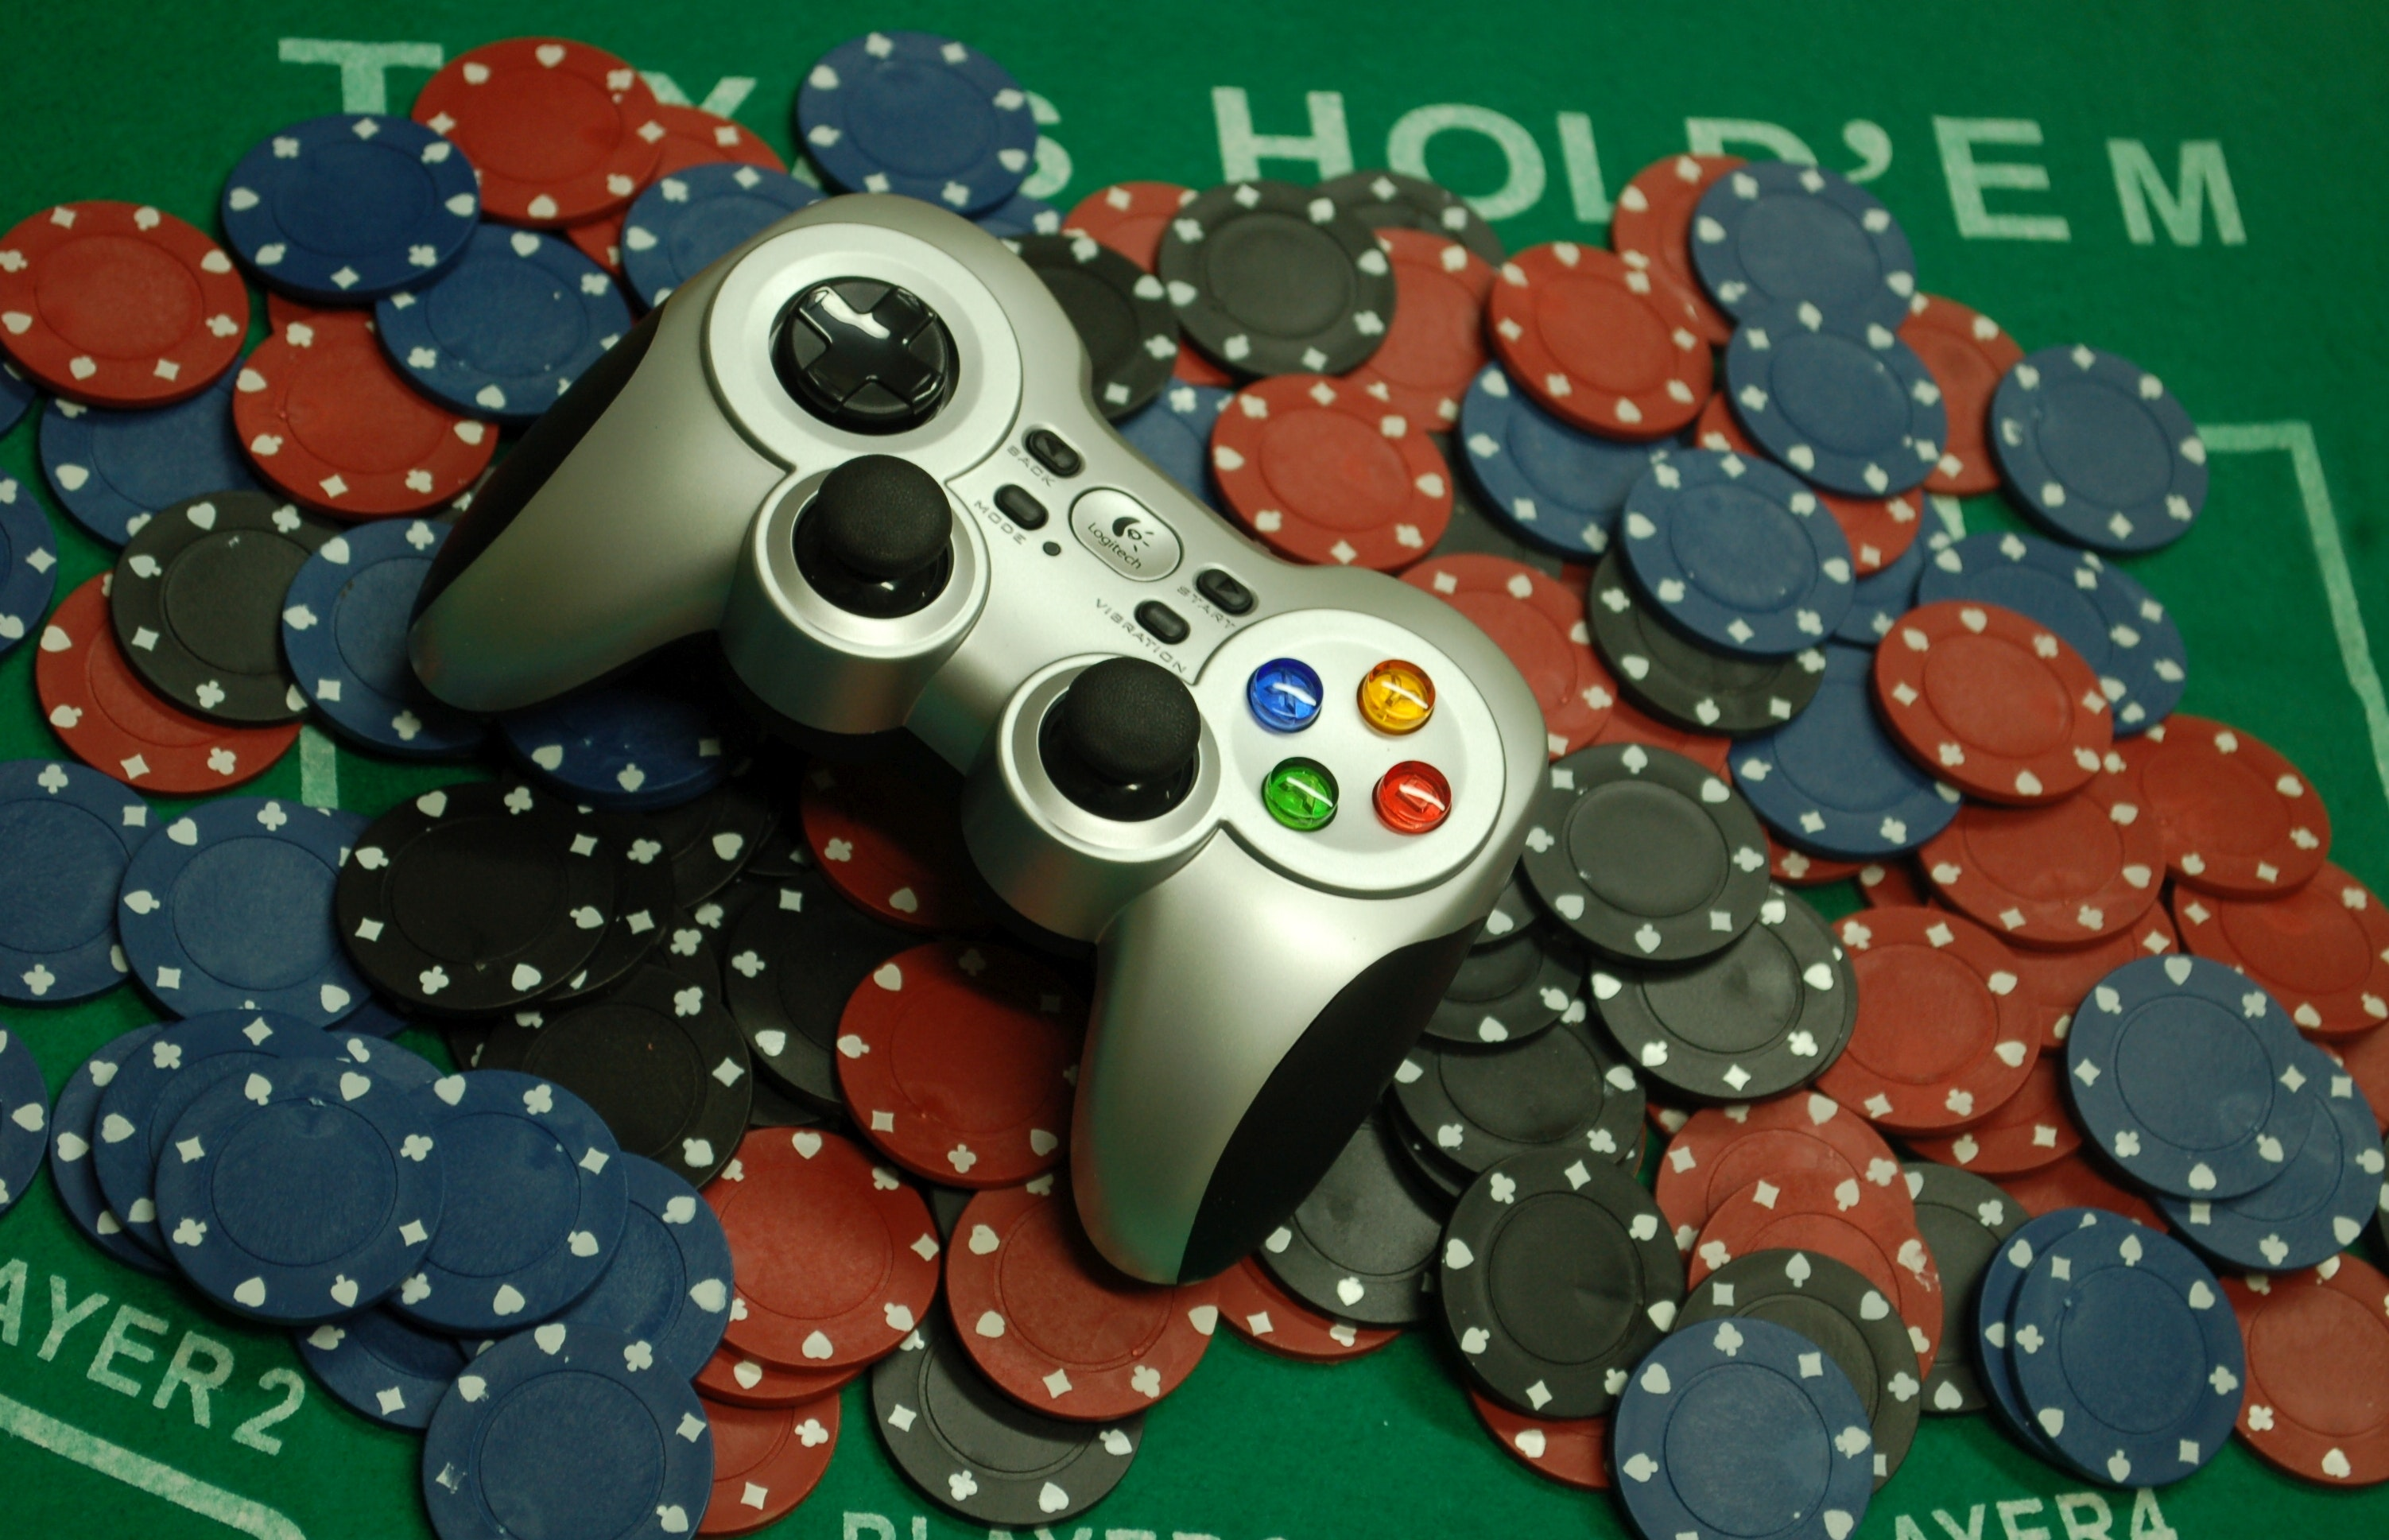 Gambling addiction with PC-, console- and online games